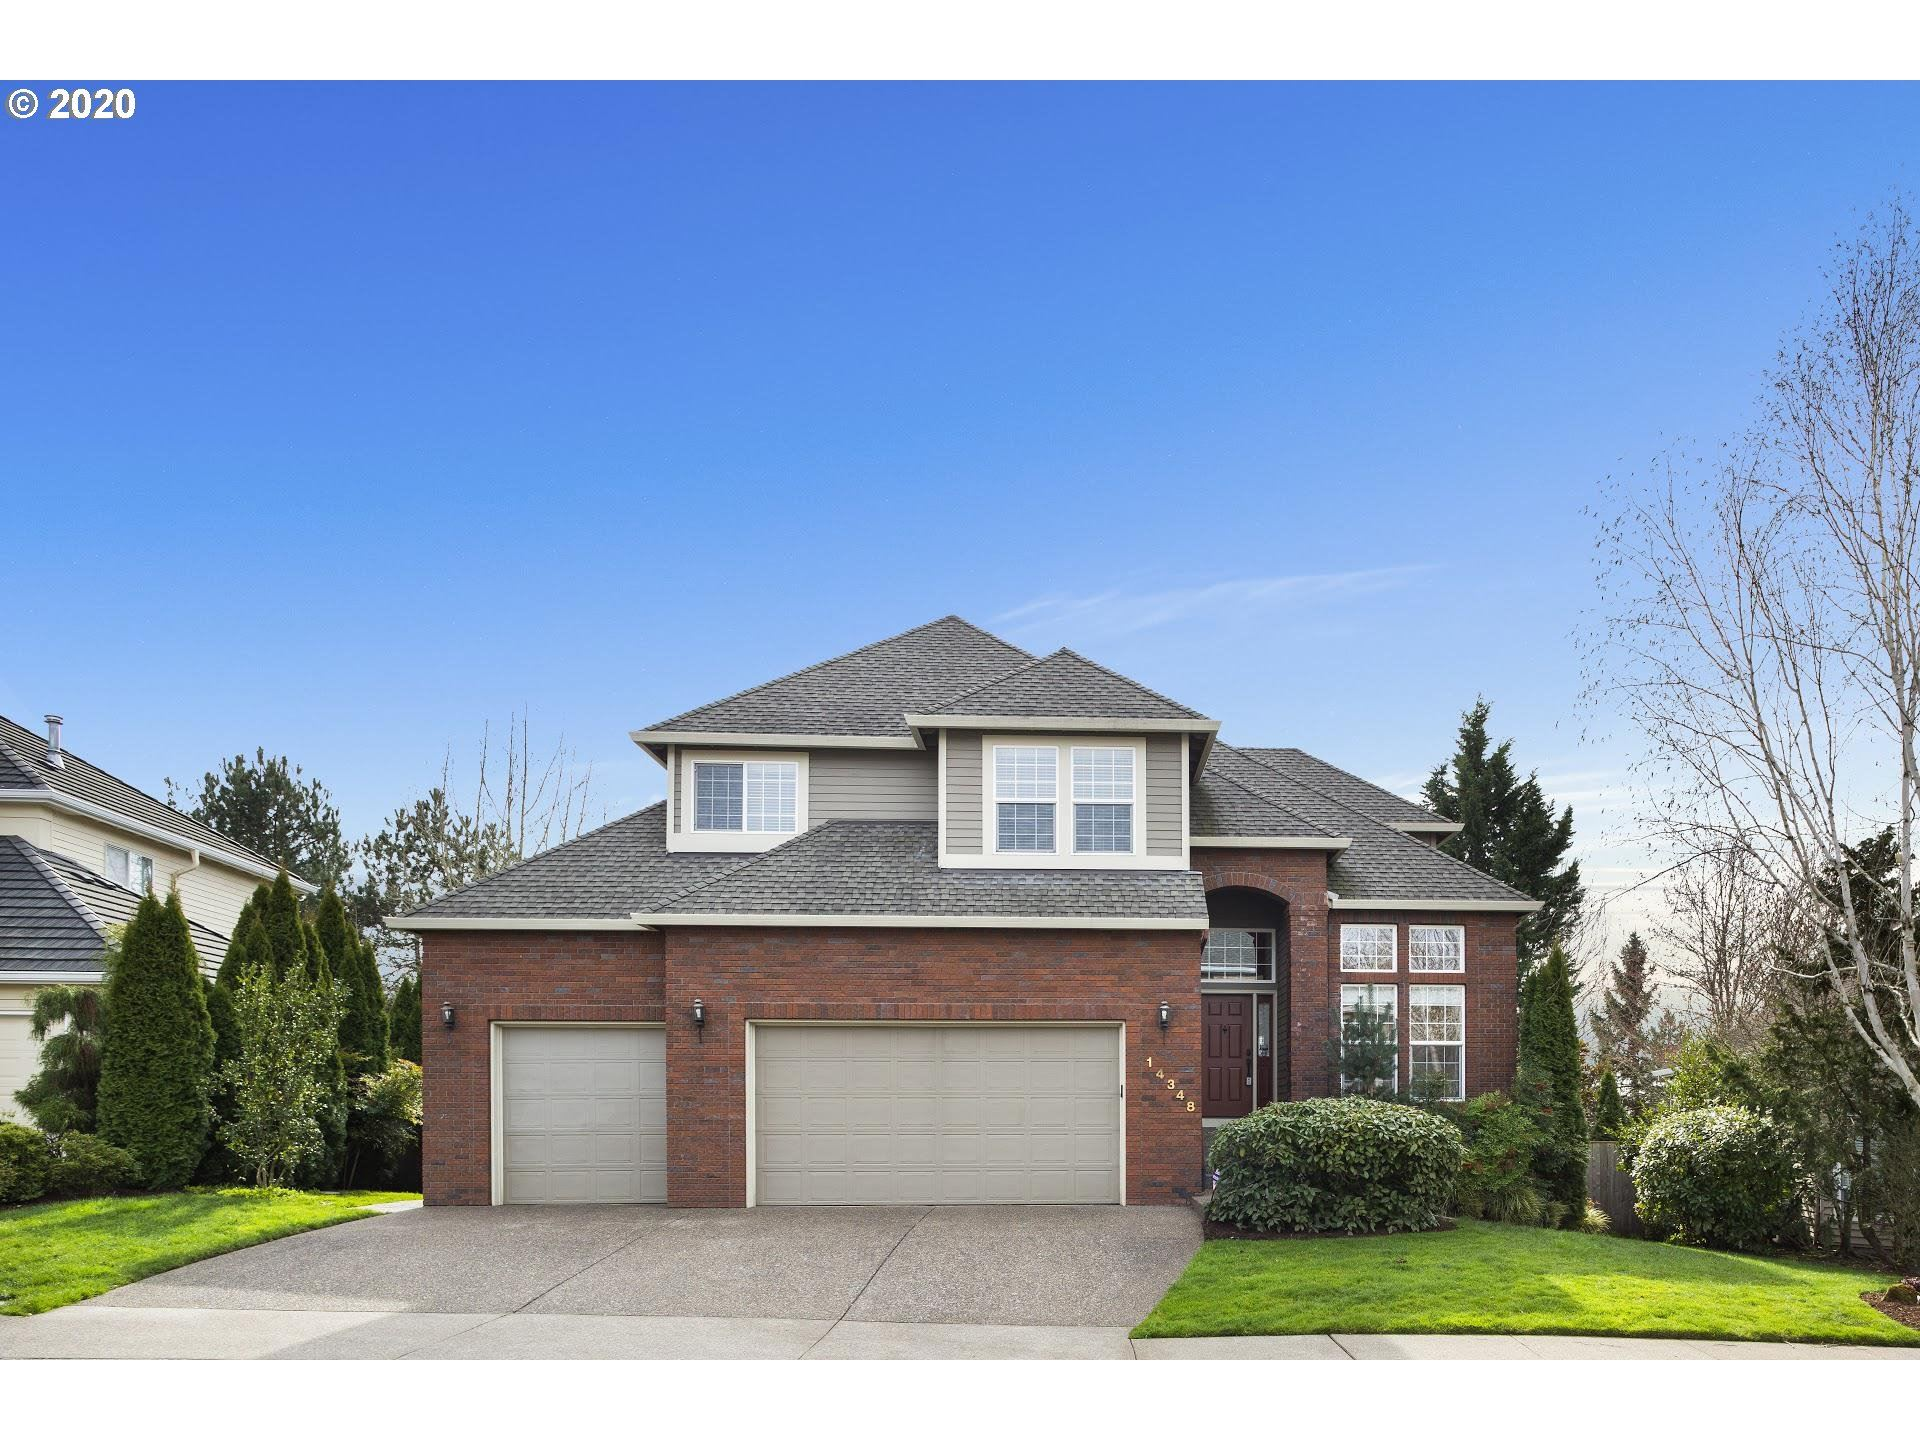 14348 NW SPRUCERIDGE LN, Portland, OR 97229 - MLS#: 20474698